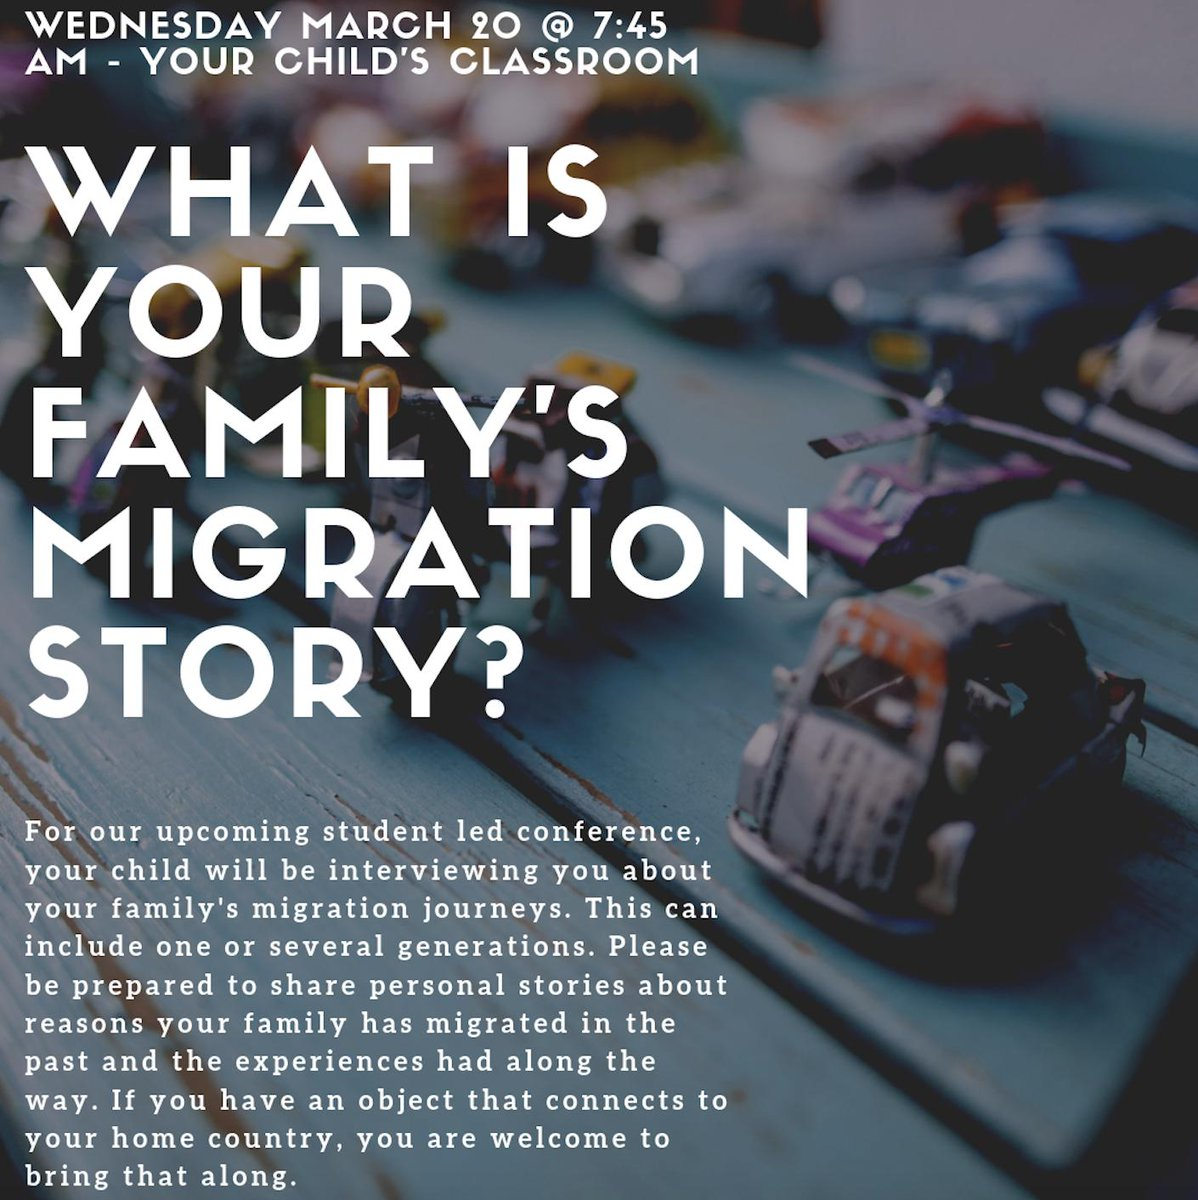 G3 Ss are eager to interview their parents tomorrow to uncover answers to the question: What is our family's migration story?#openhouse #studentled #pypchat #ibpyp @GESatKAUST